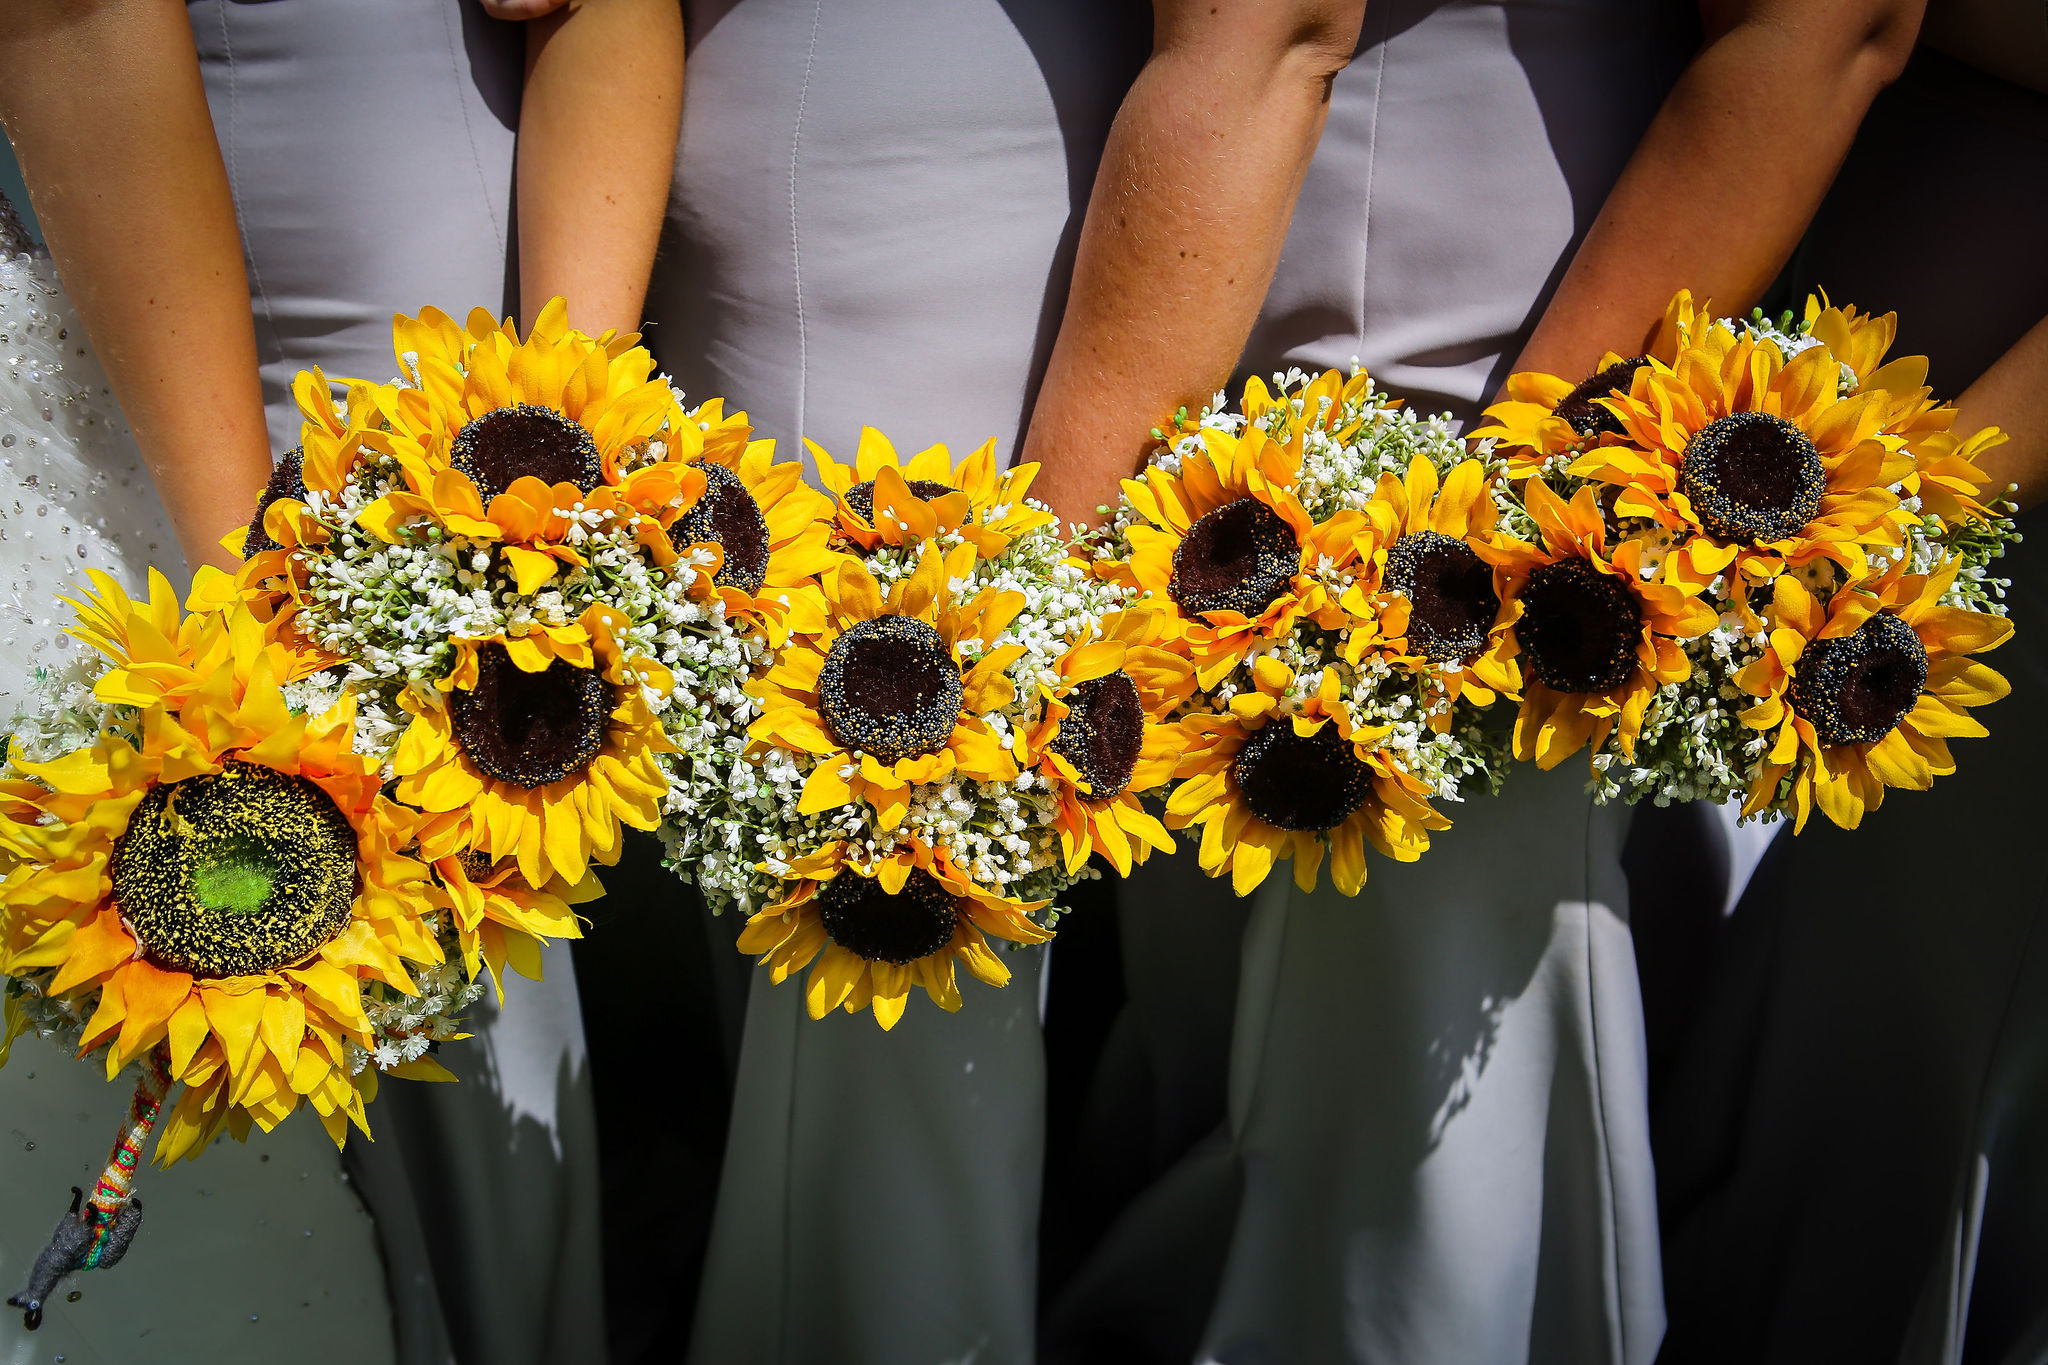 Harriet&Rhys Wedding - Magical sunflower wedding